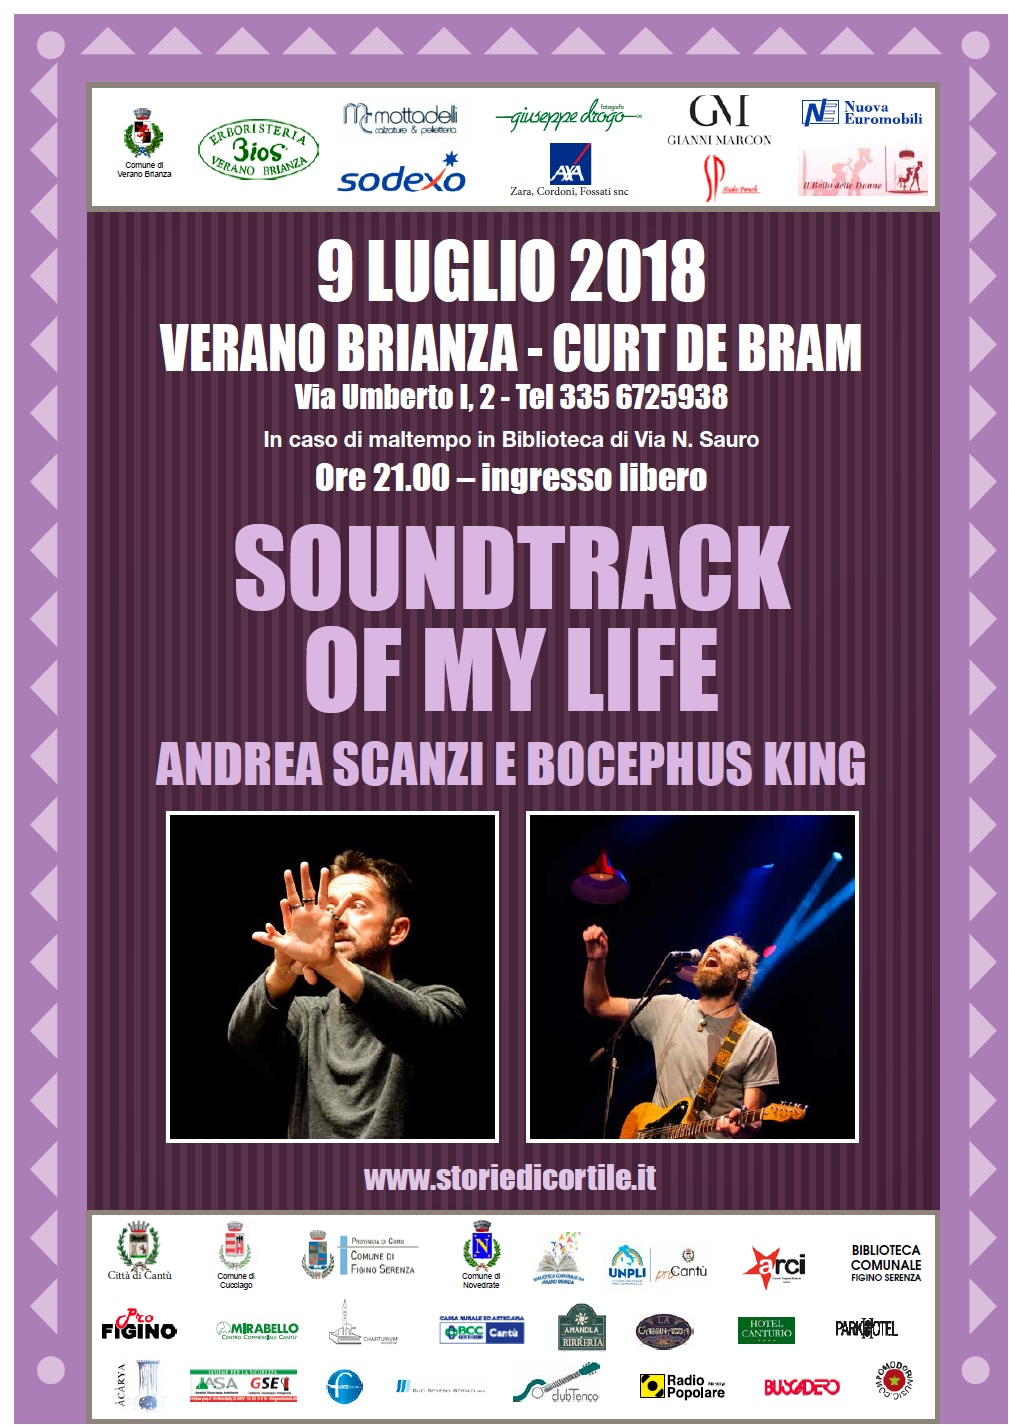 ANDREA SCANZI – SOUNDTRACK OF MY LIFE